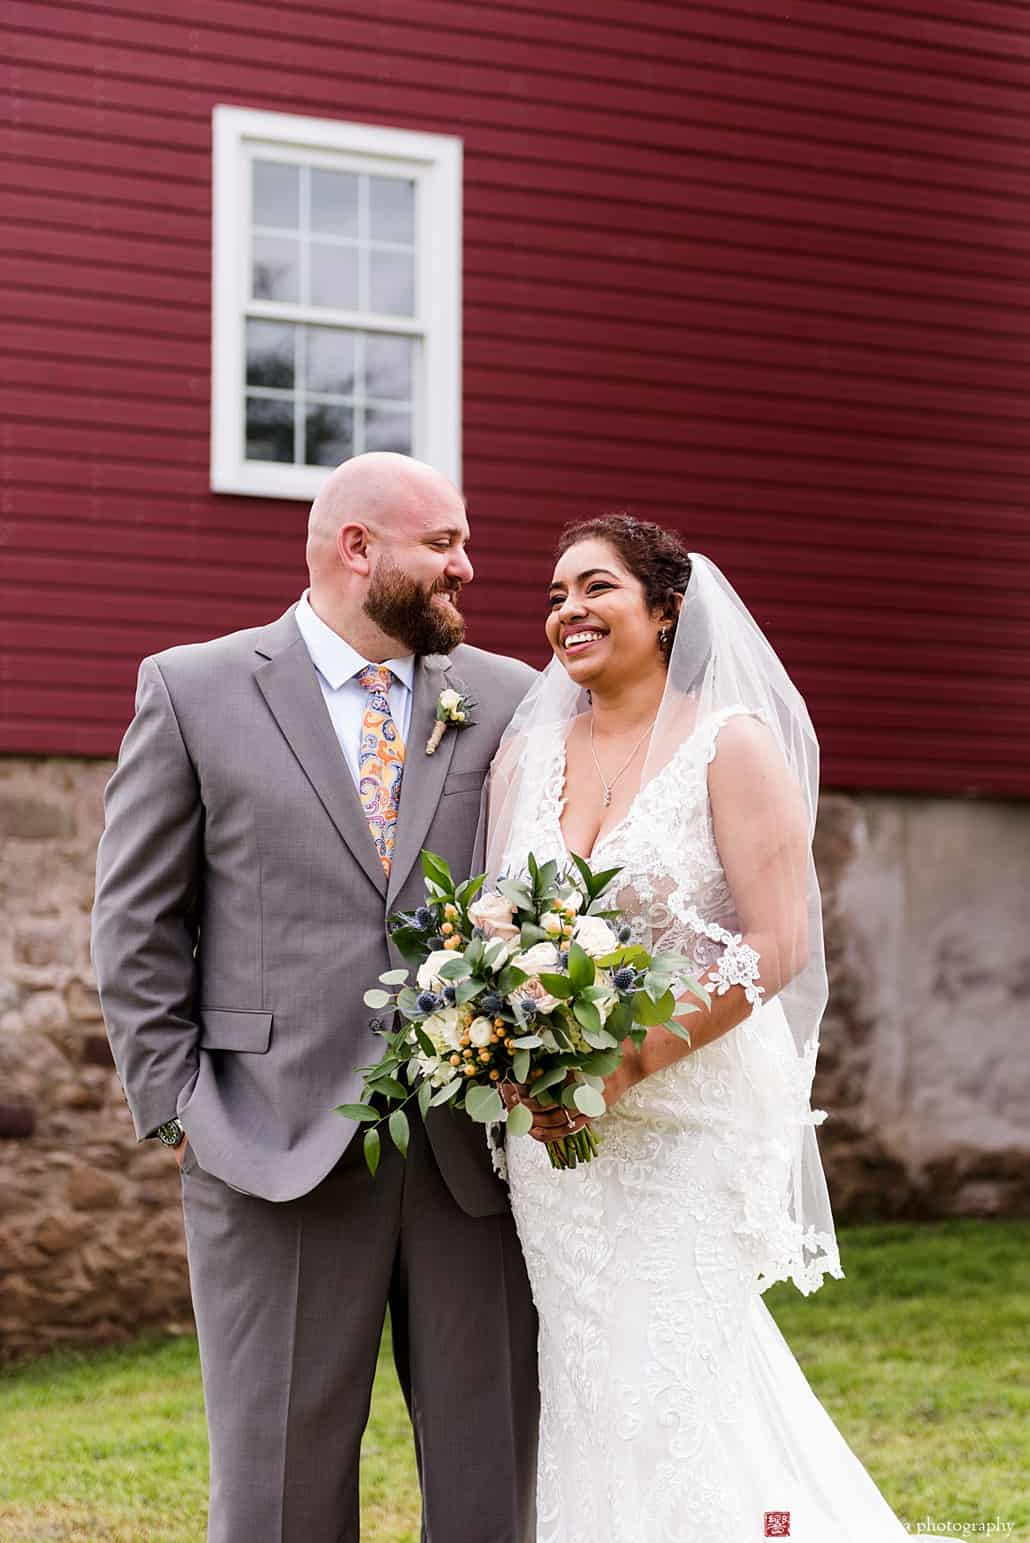 Candid wedding photographer NJ: relaxed portrait in front of the red barn at Glenmoore Farm in Hopewell NJ